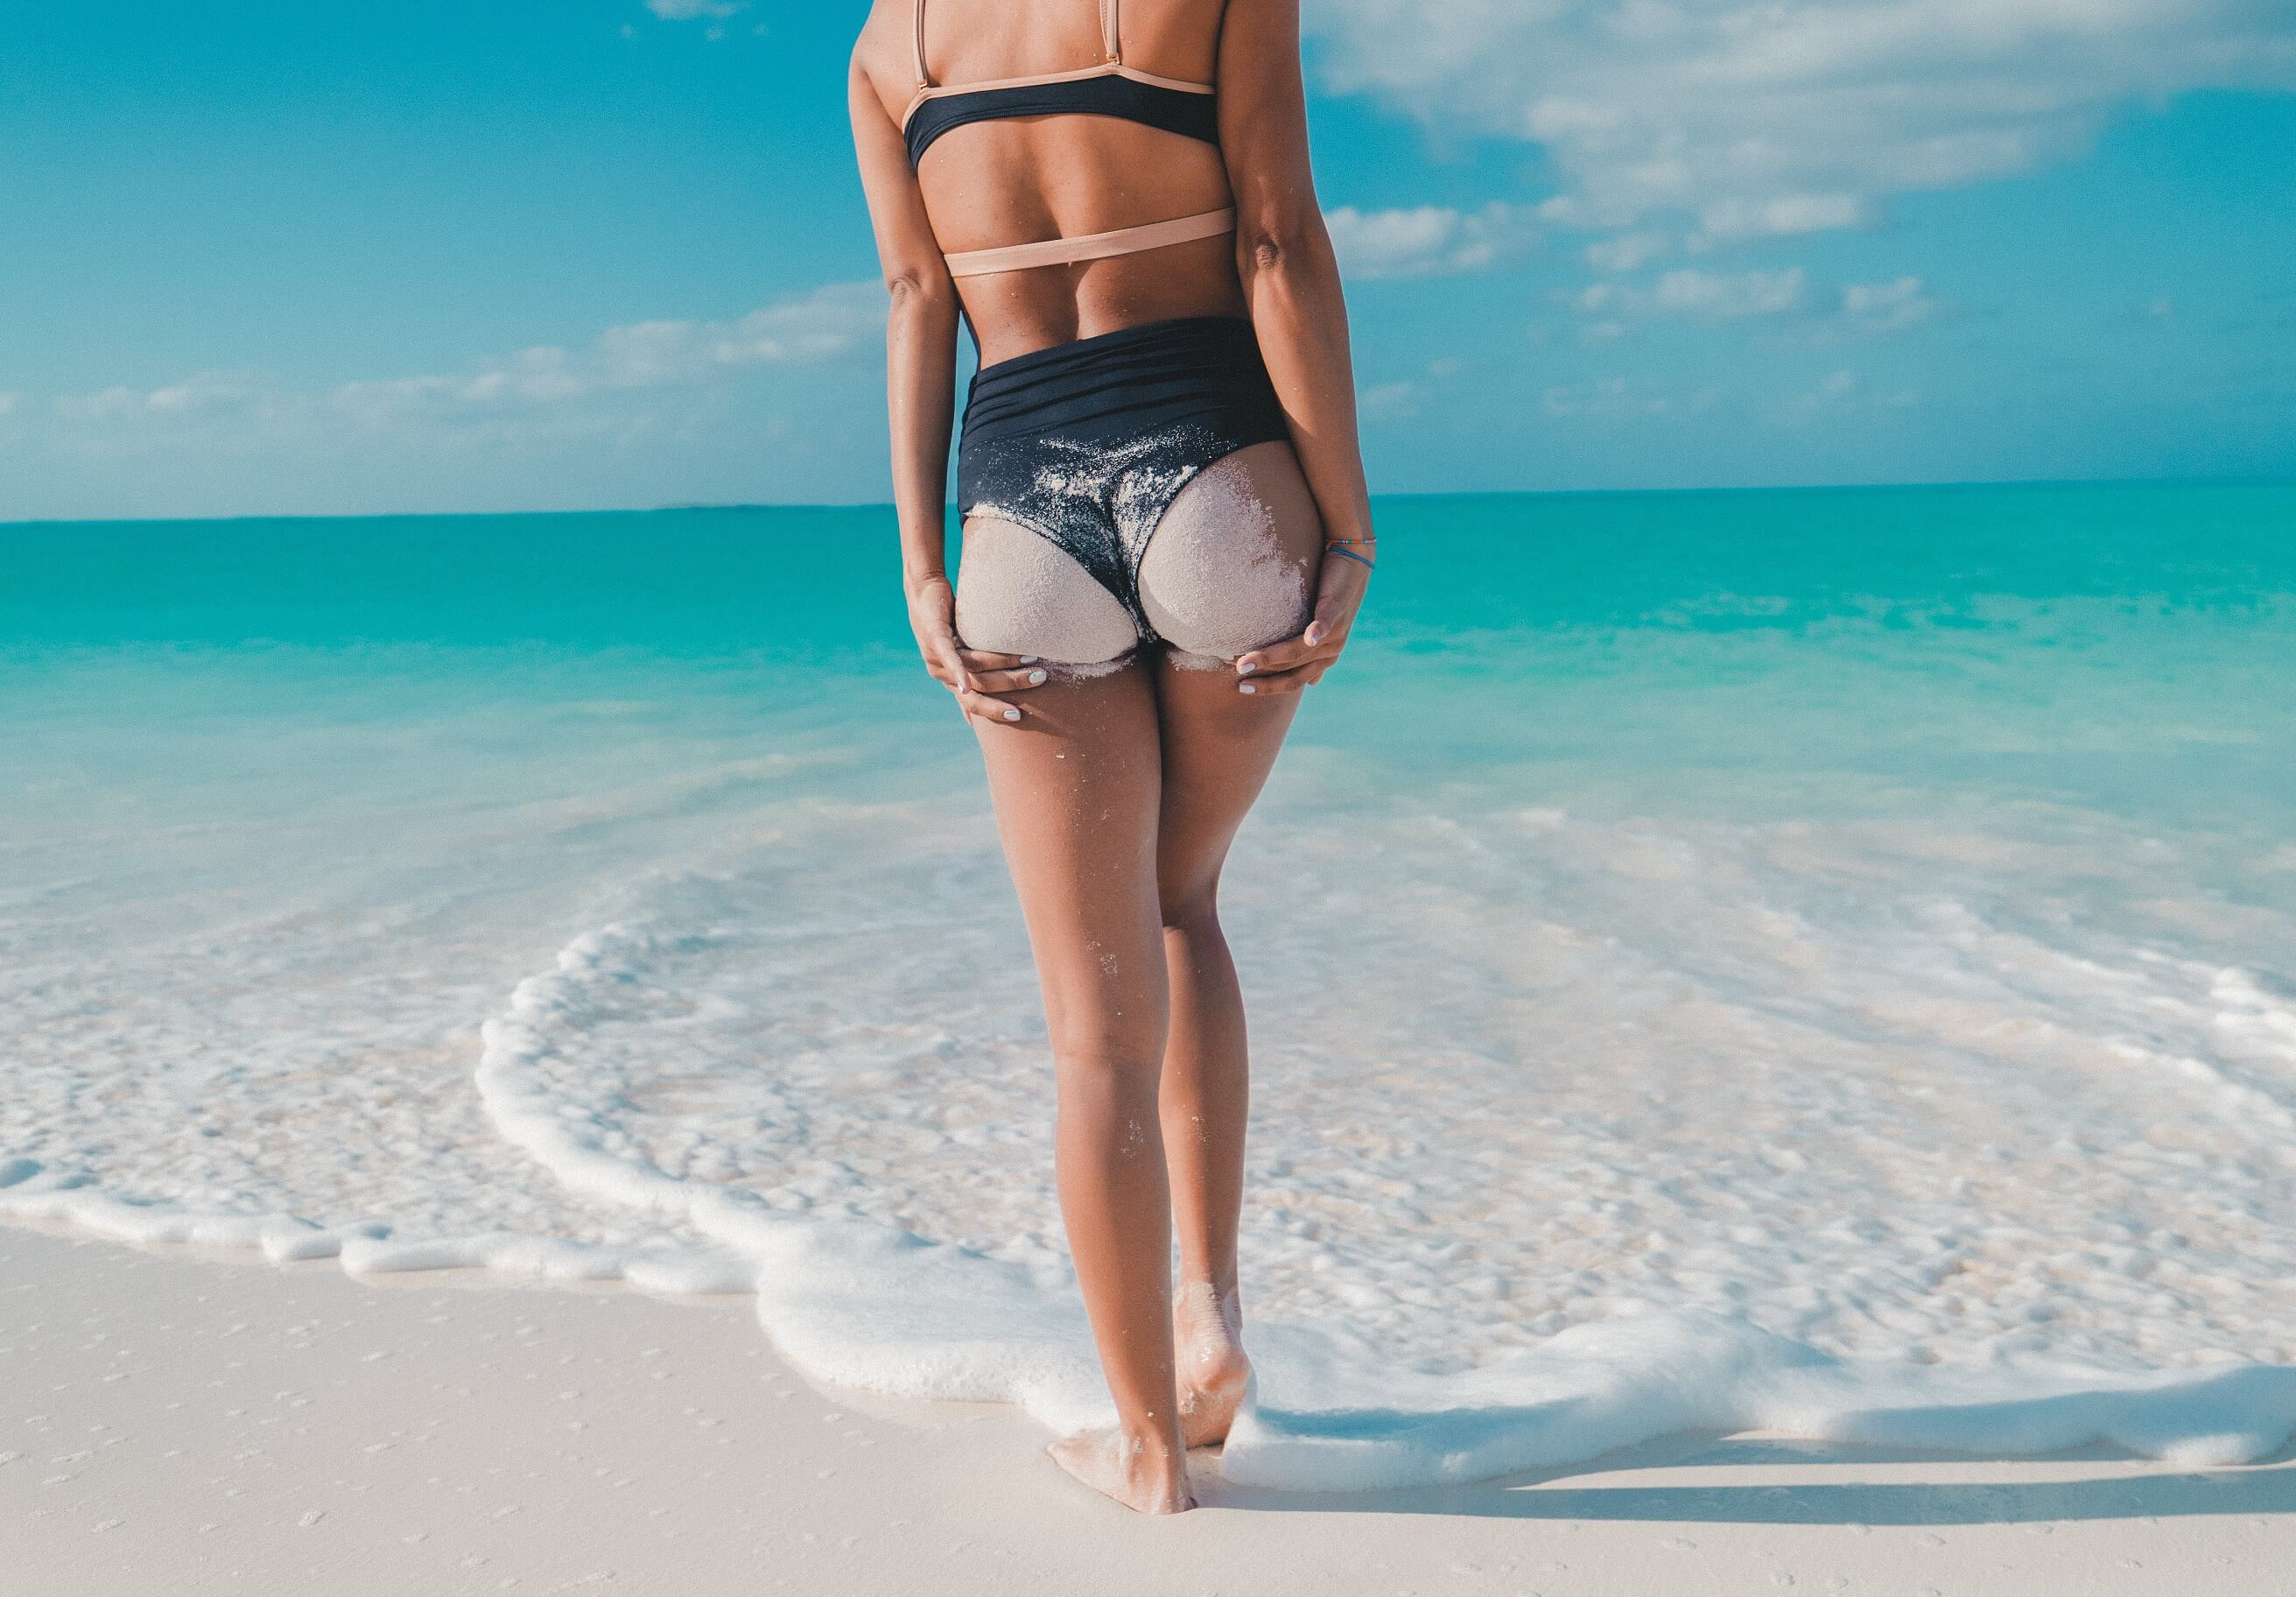 A bikini-wearing woman cheekily poses walking into the ocean.